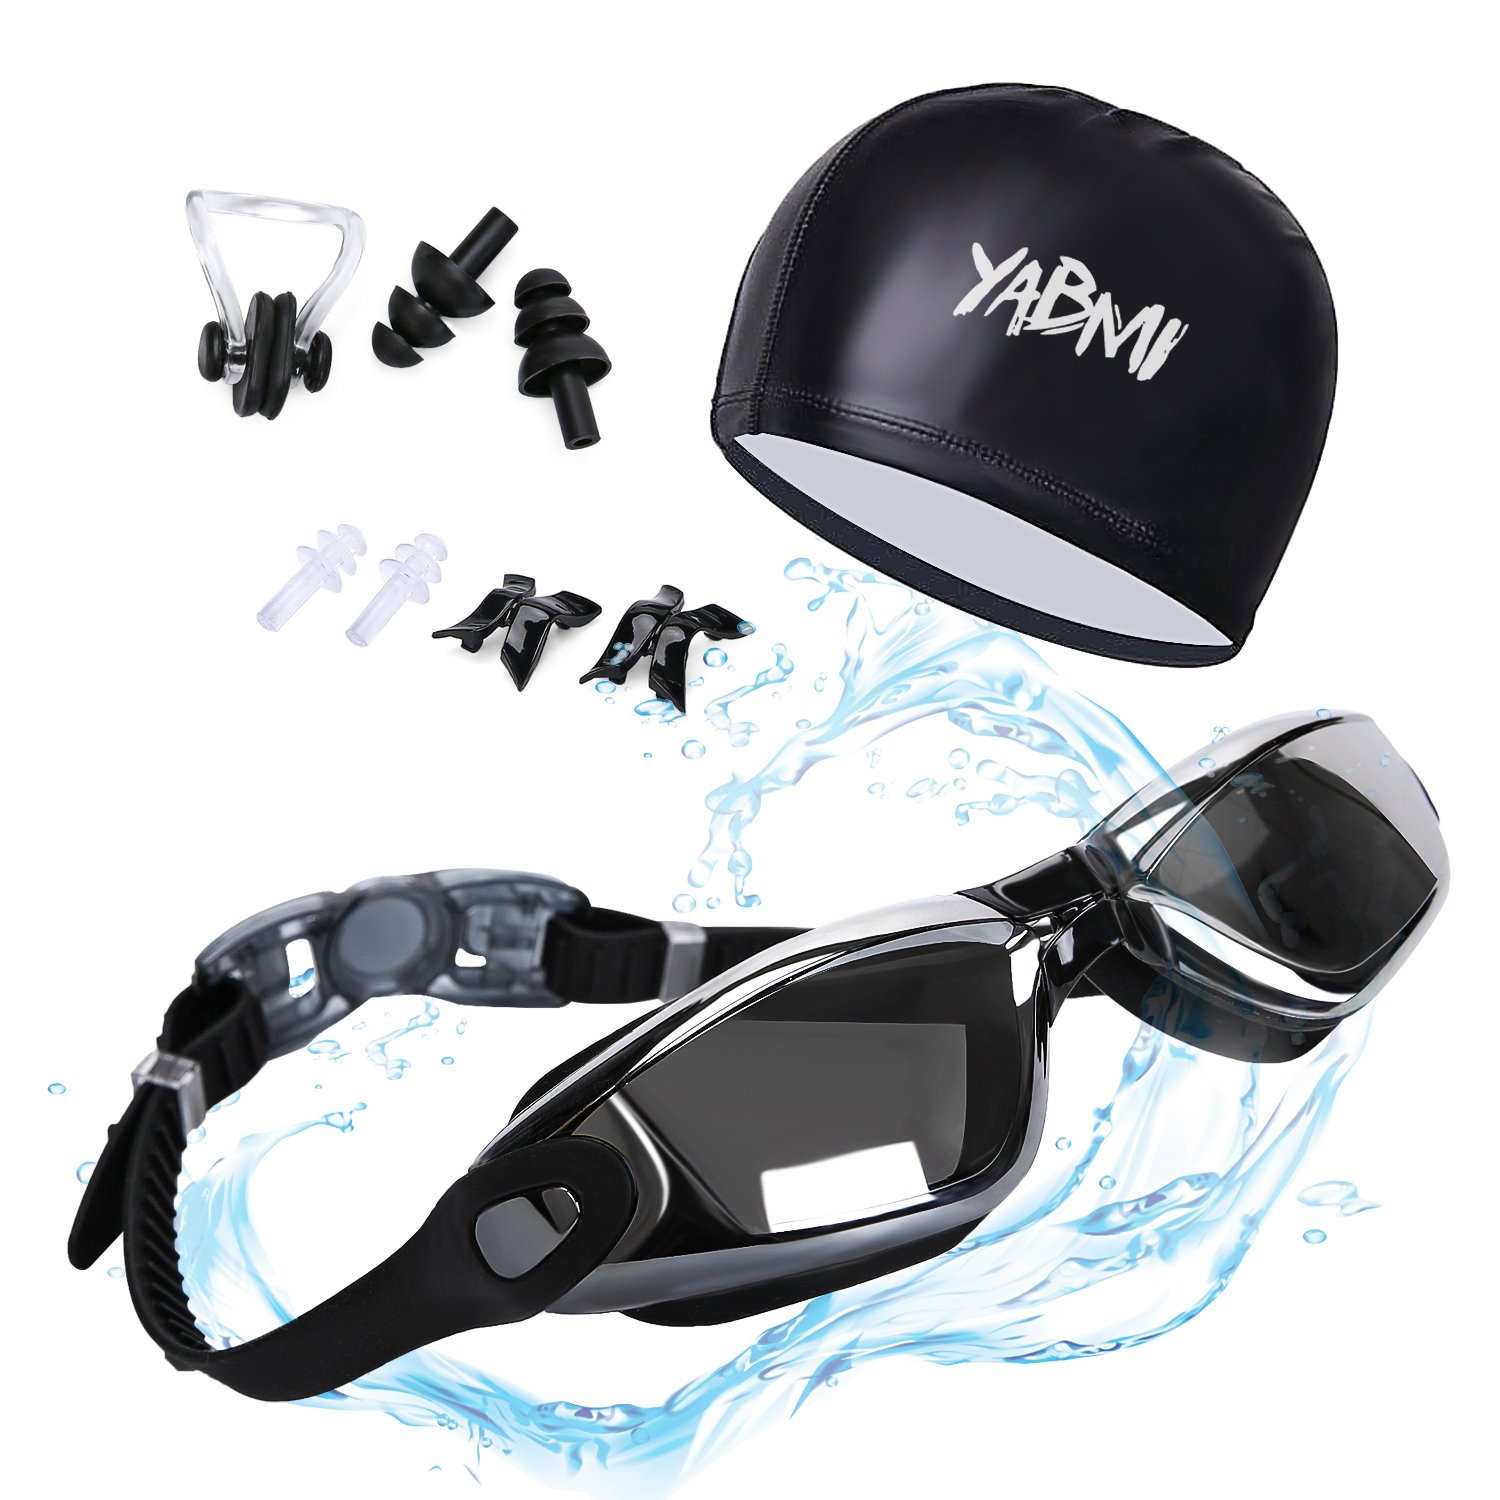 Swimming Goggles + Swim Cap + 3 Interchangeable Nose Bridge + Ear Plugs + Nose Clip,Swim Glasses No Leaking Anti Fog UV Protection for Men Women Youth By Yabmi by Yabmi